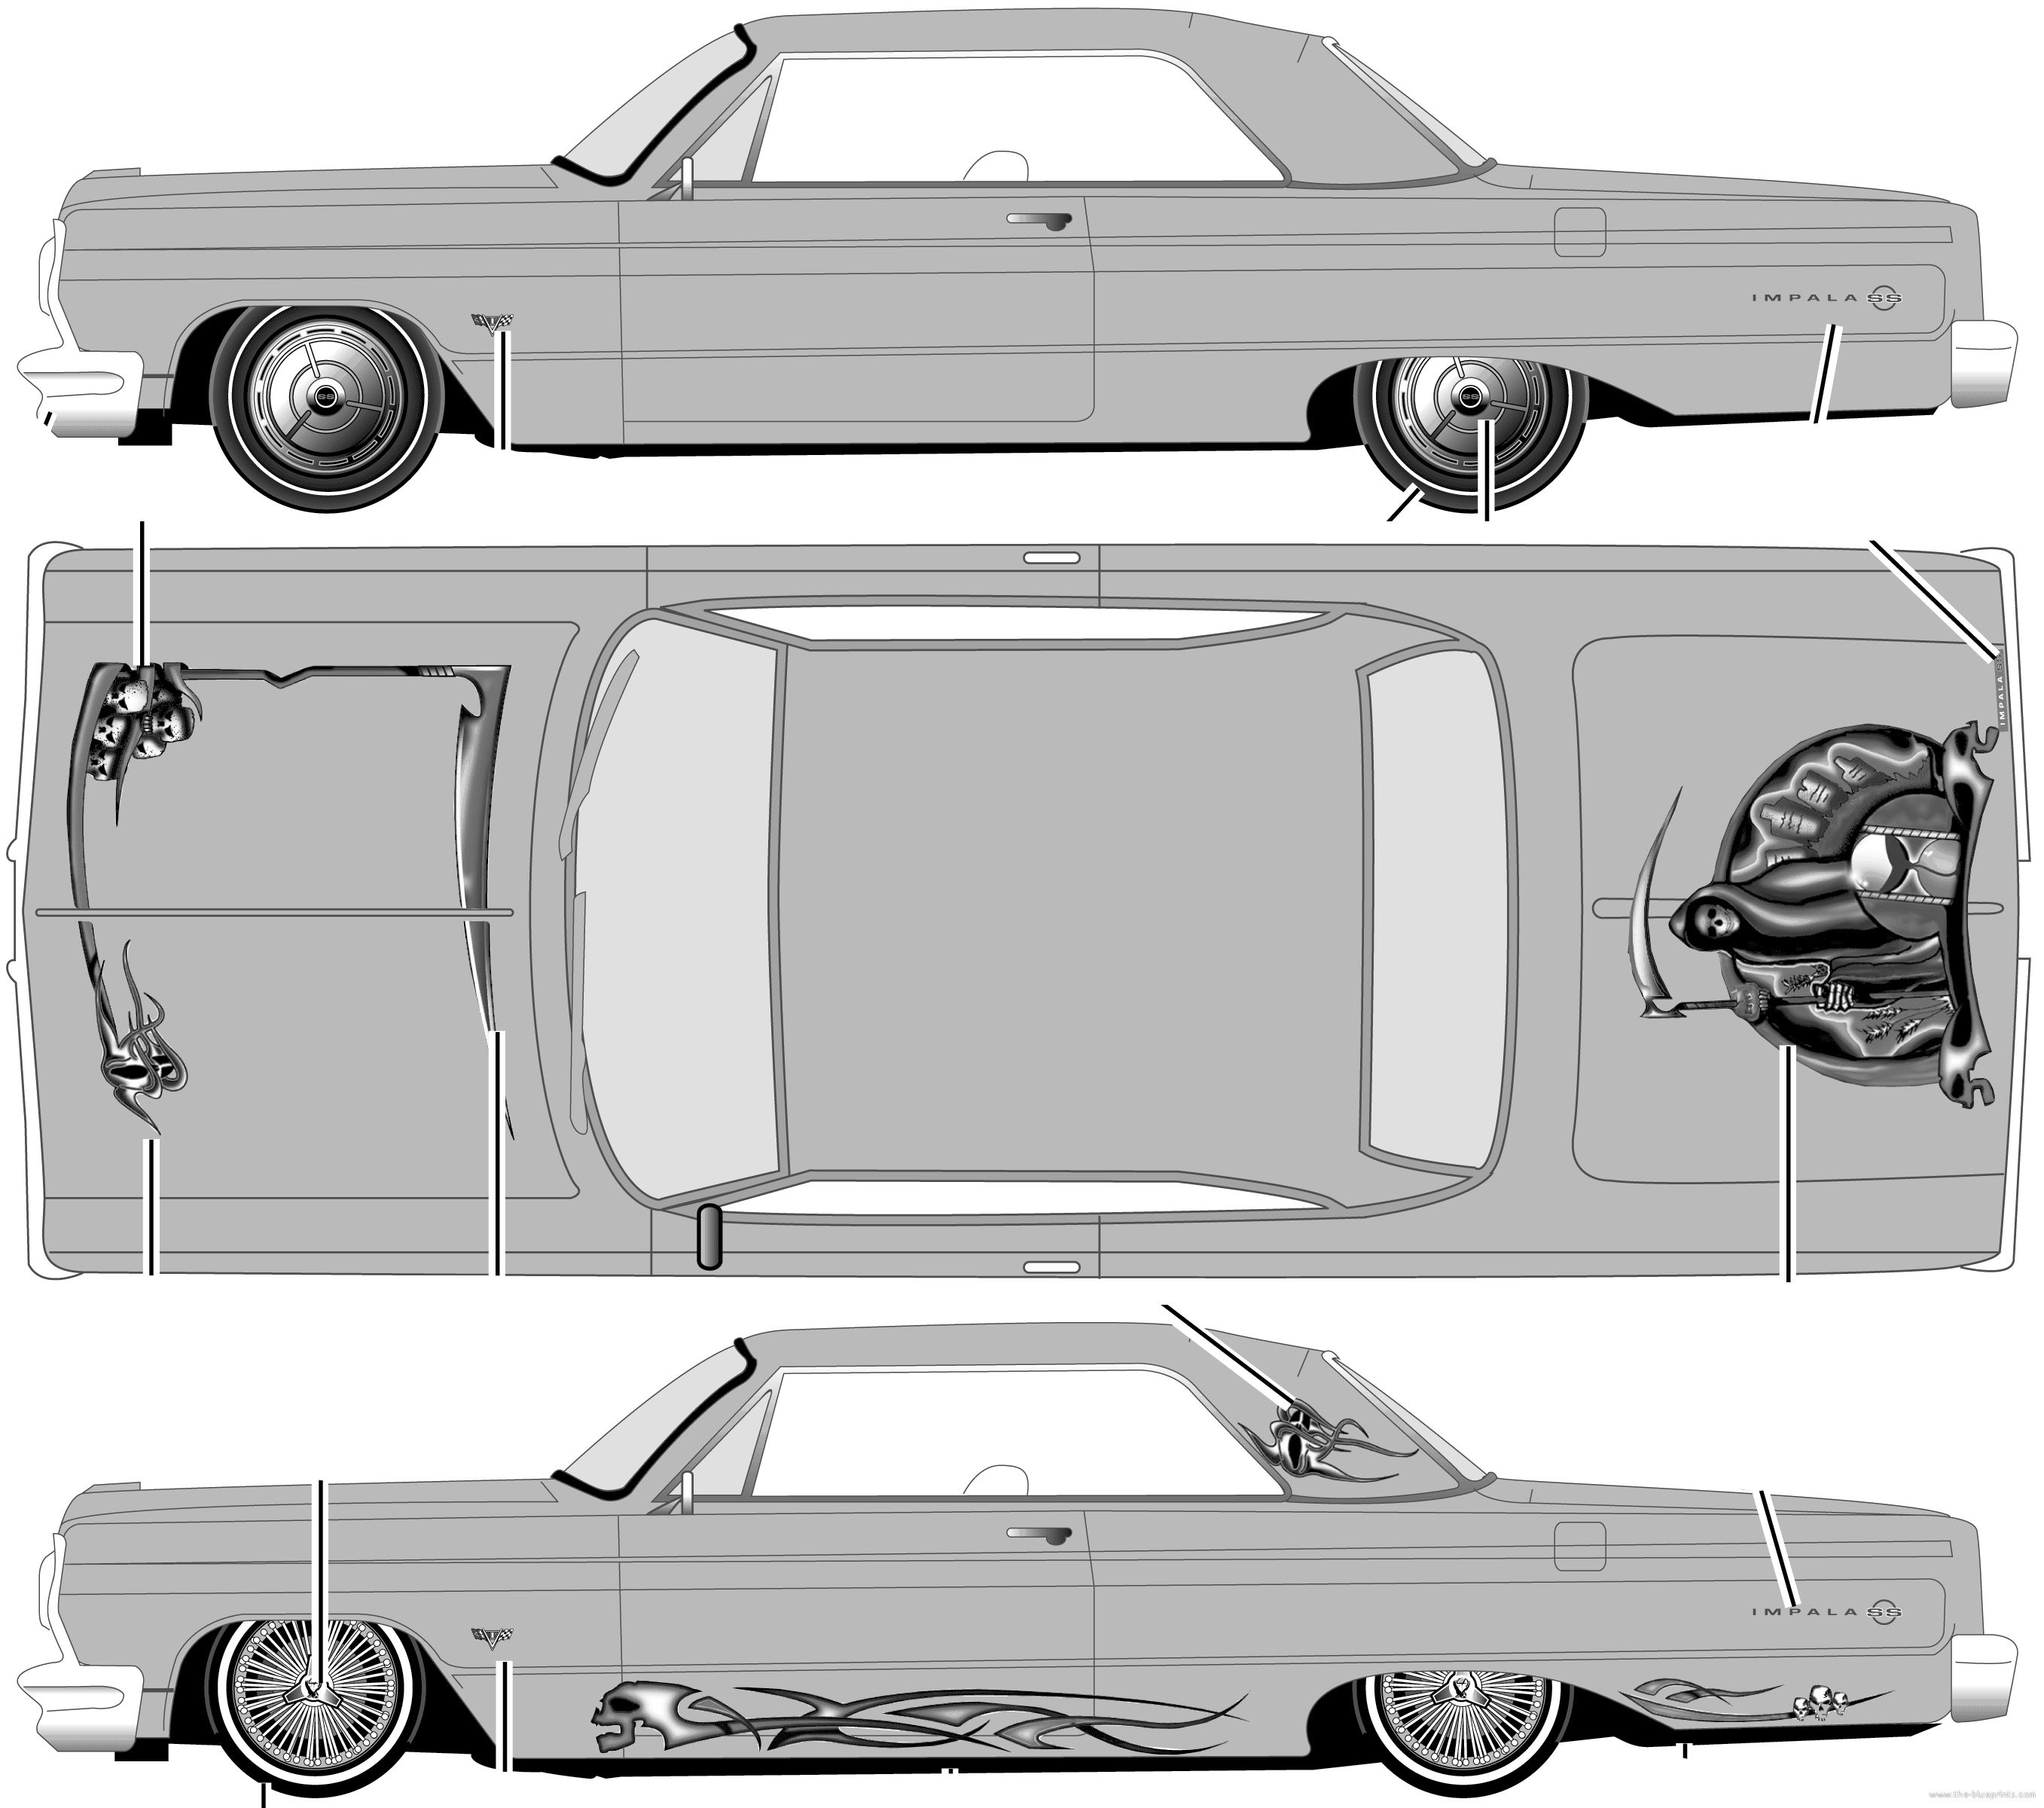 Cool Lowrider Cars Drawings Chevrolet impala lowriderLowrider Chevy Truck Drawings